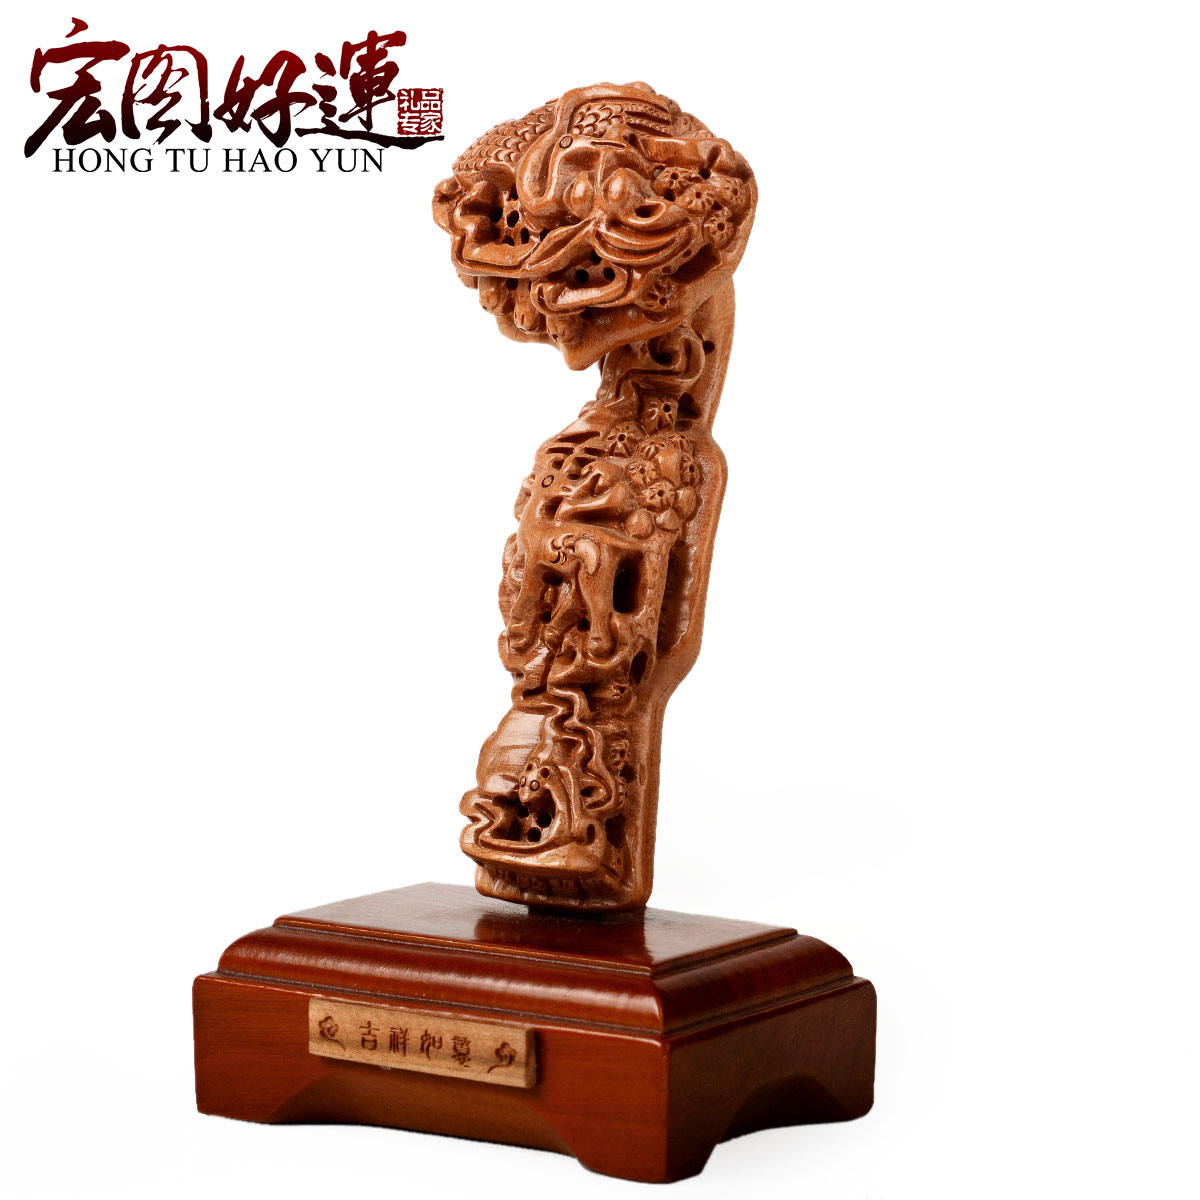 Hongtu luck natural mahogany wood carvings songhe sickness auspicious ornaments home crafts creative gifts